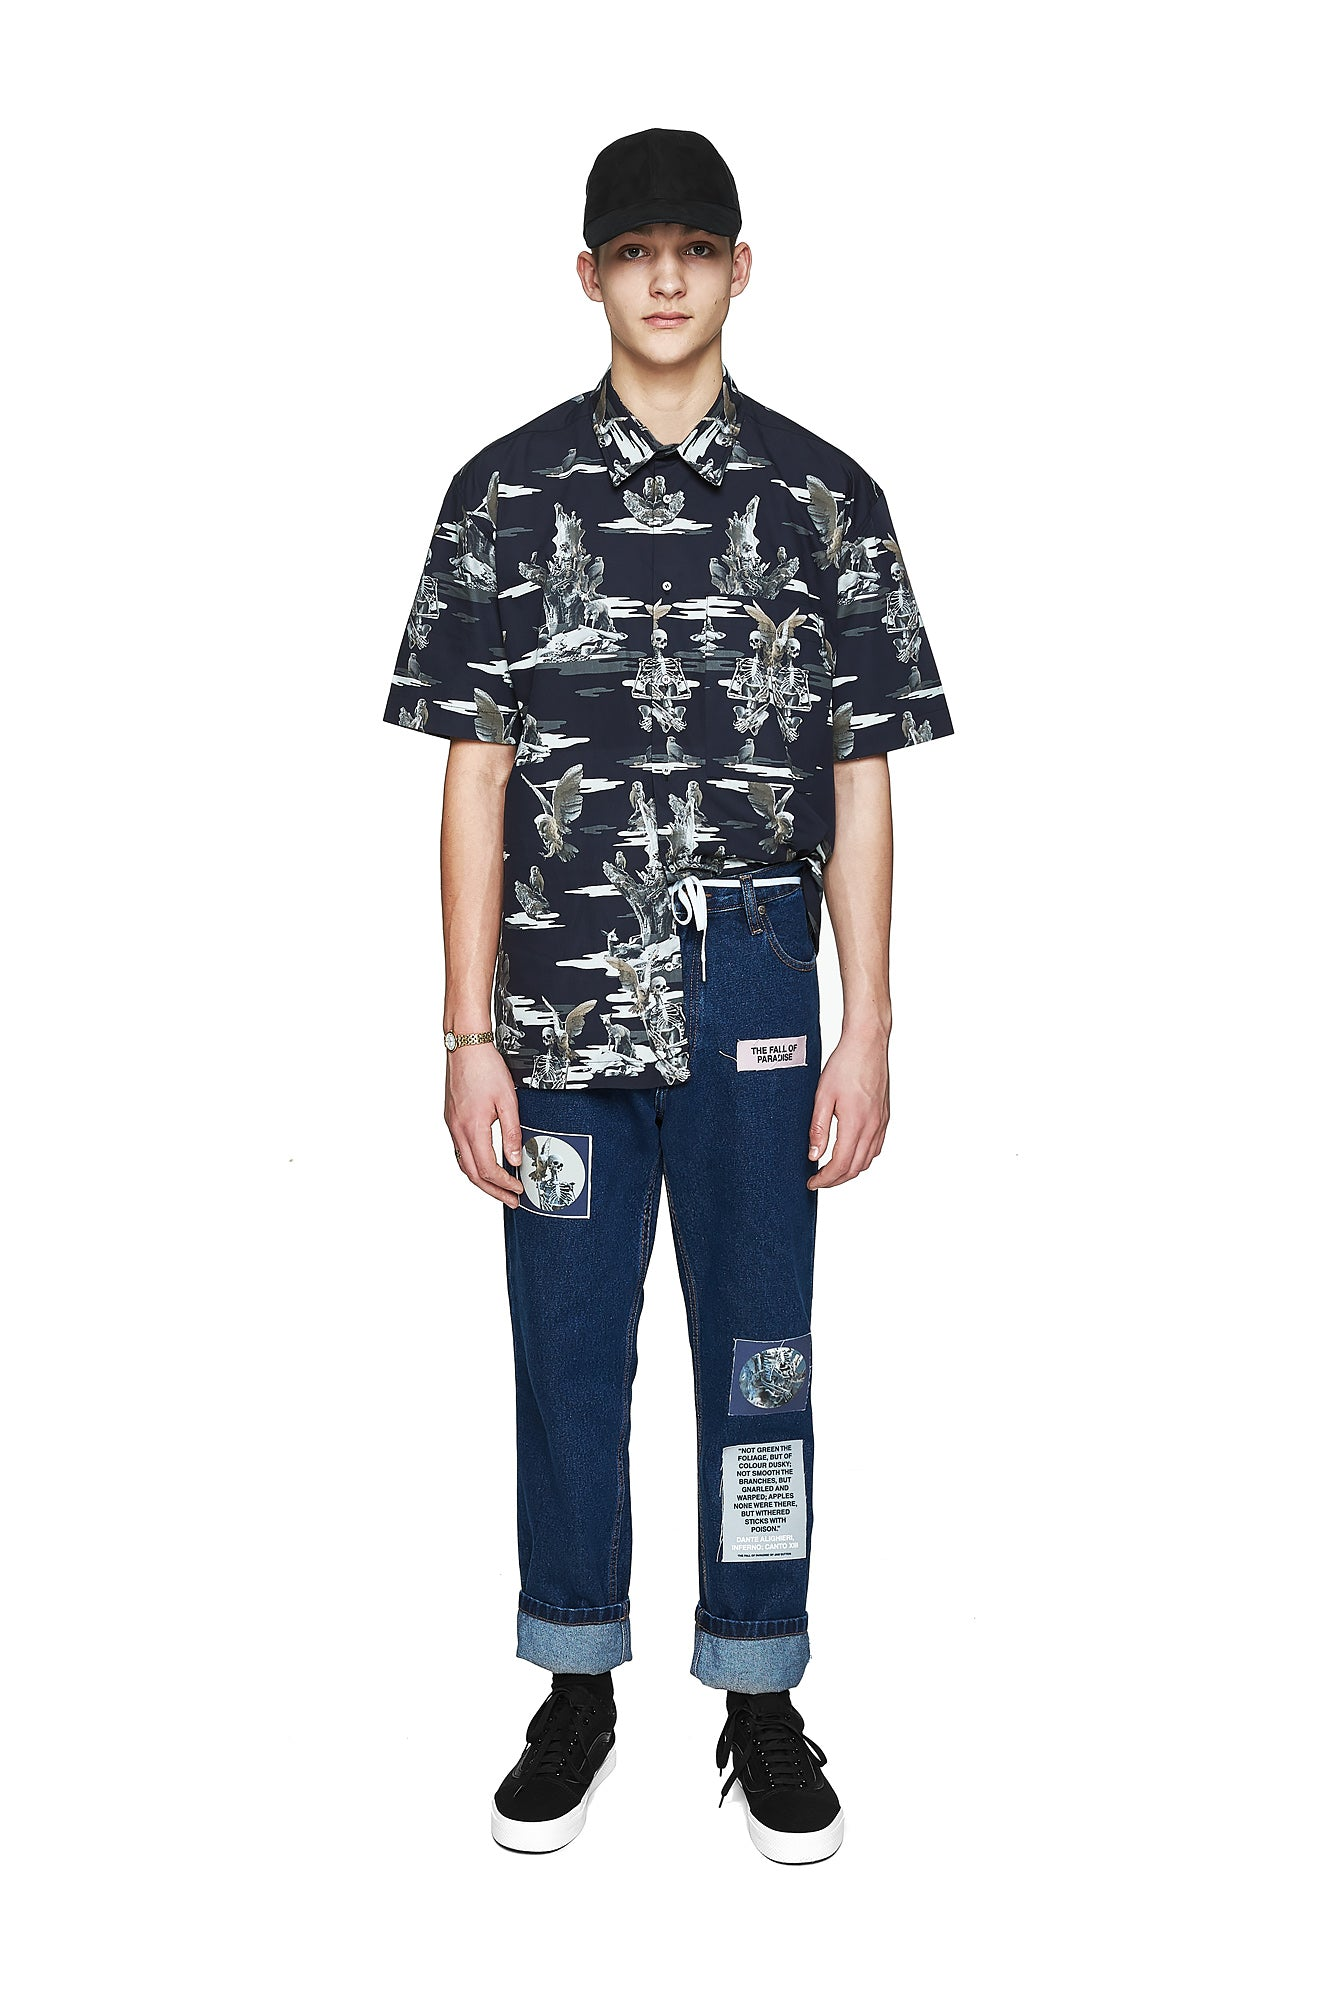 Paradise Camo Shirt - Men's Designer Brand - This Is Not Clothing - Lookbook Photo 1